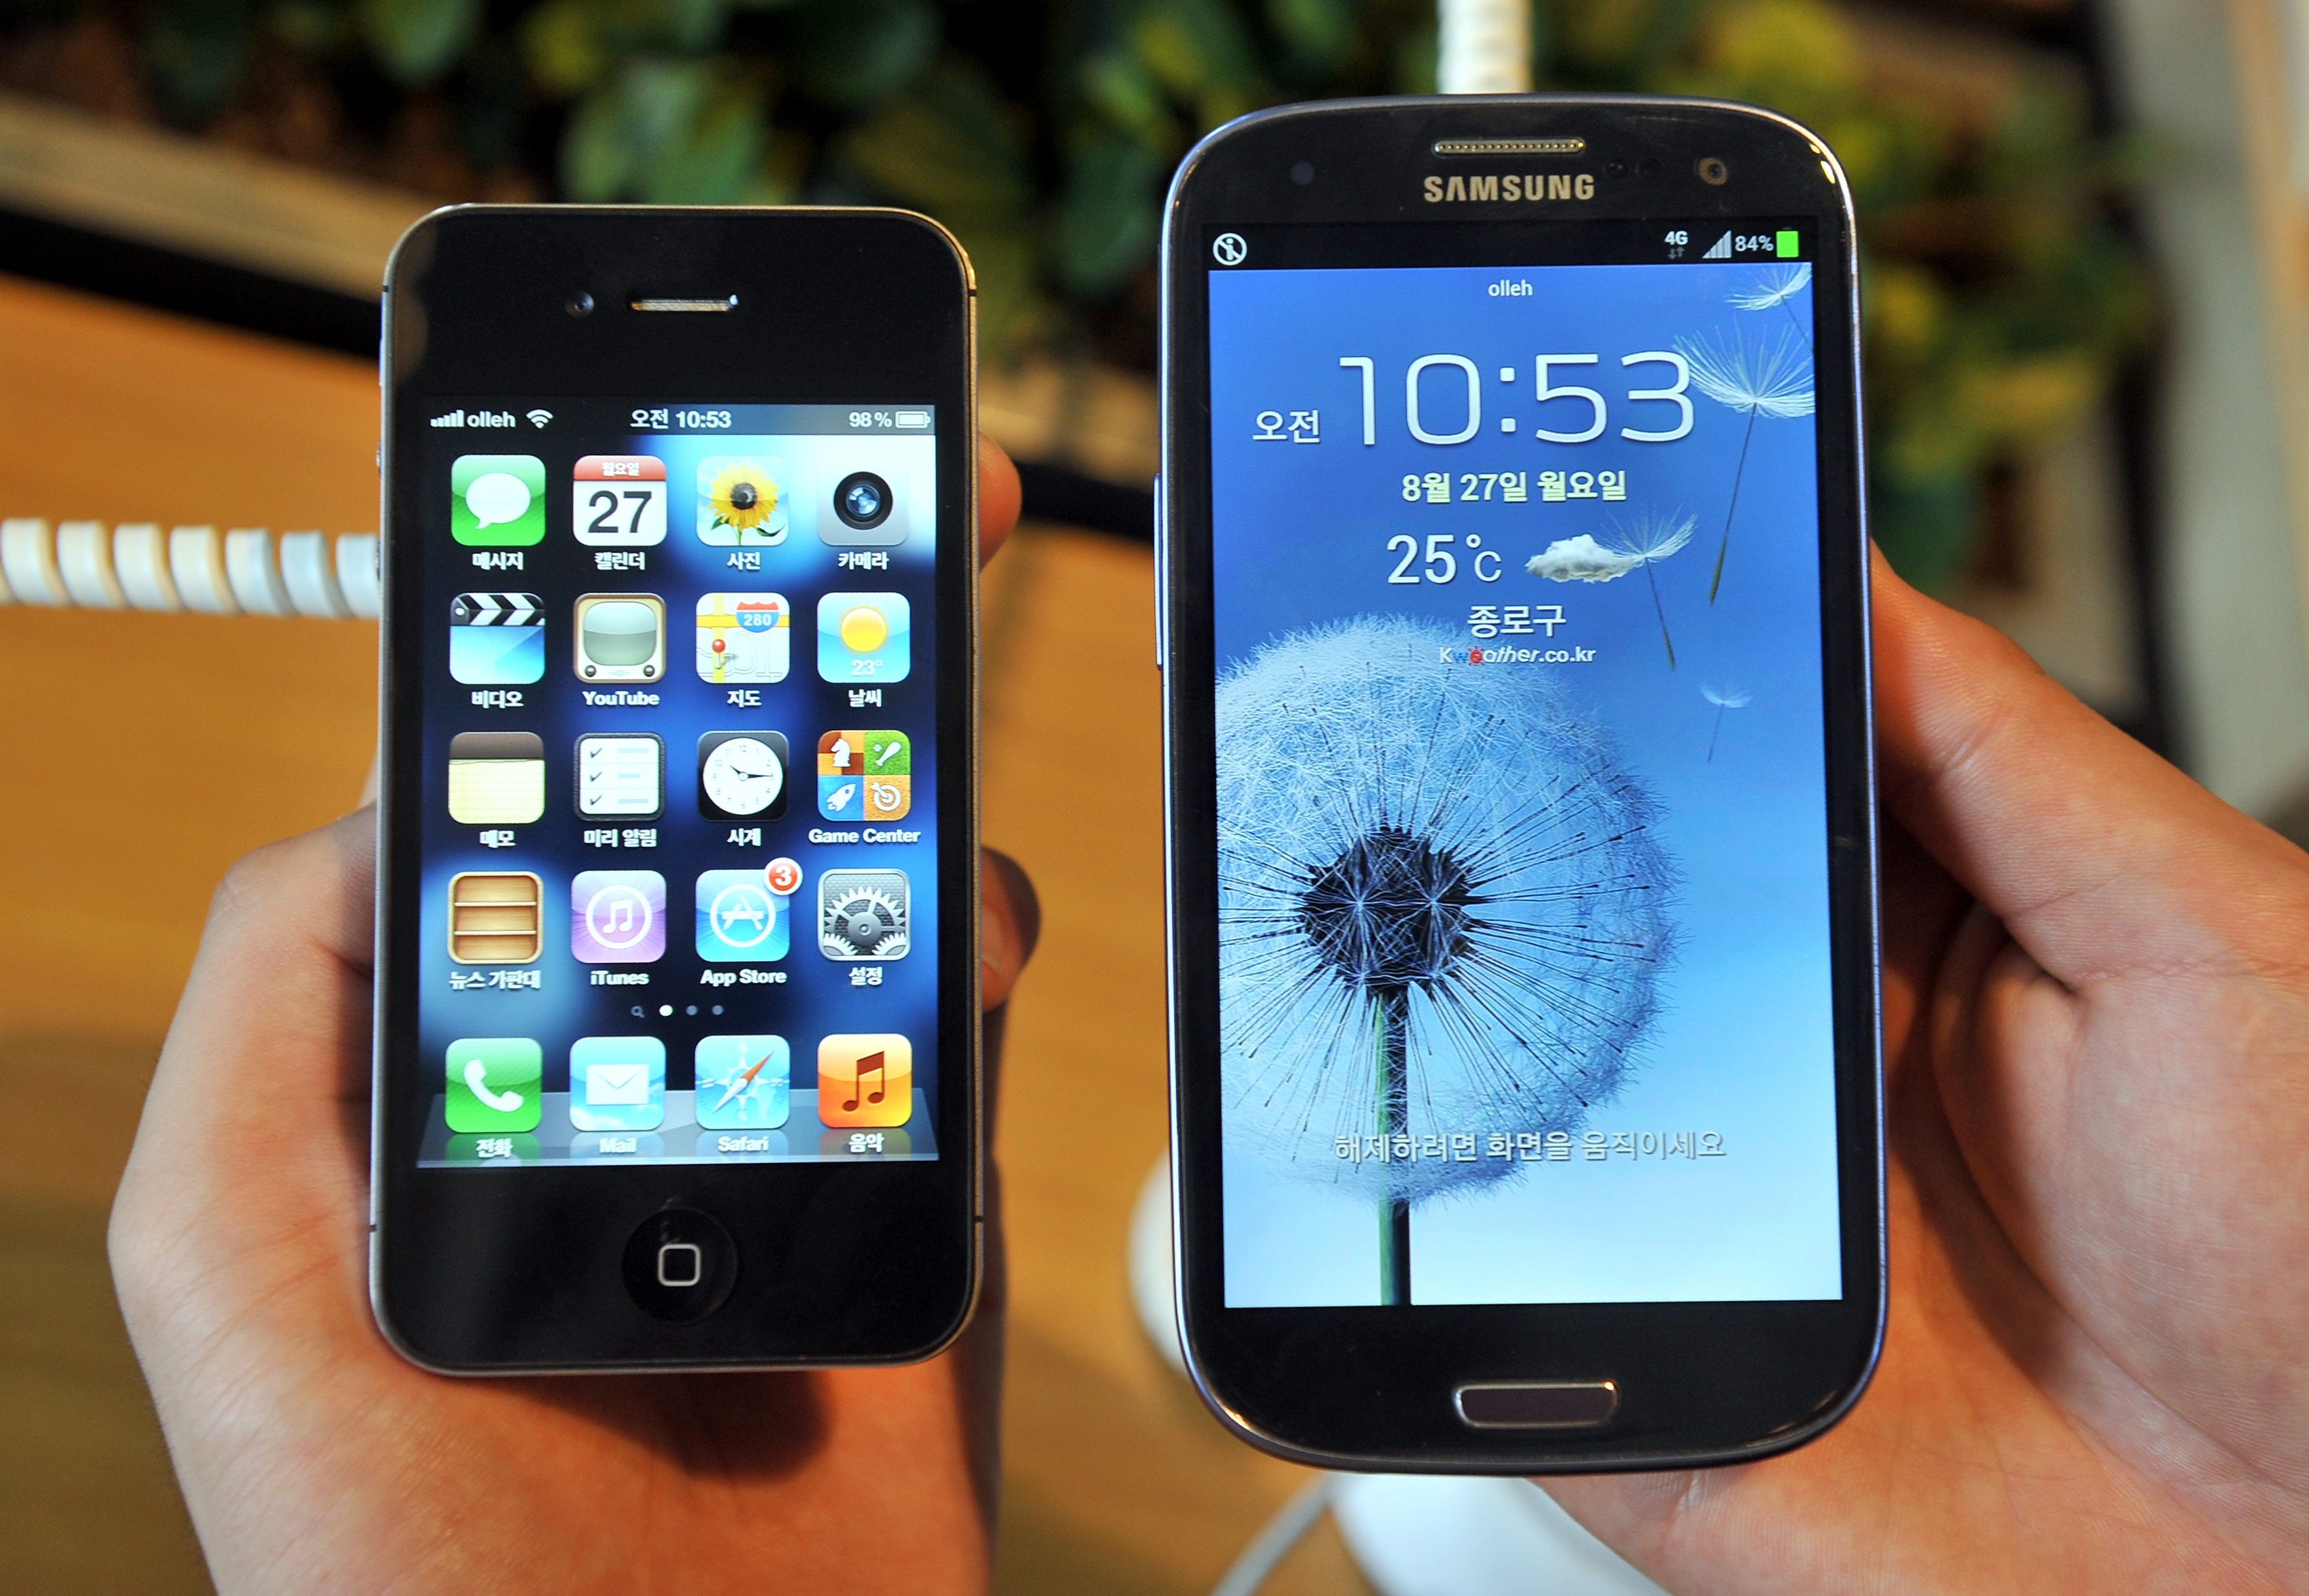 Apple 41.3% in US Smartphones, Samsung 27%, Android Up, iOS Down